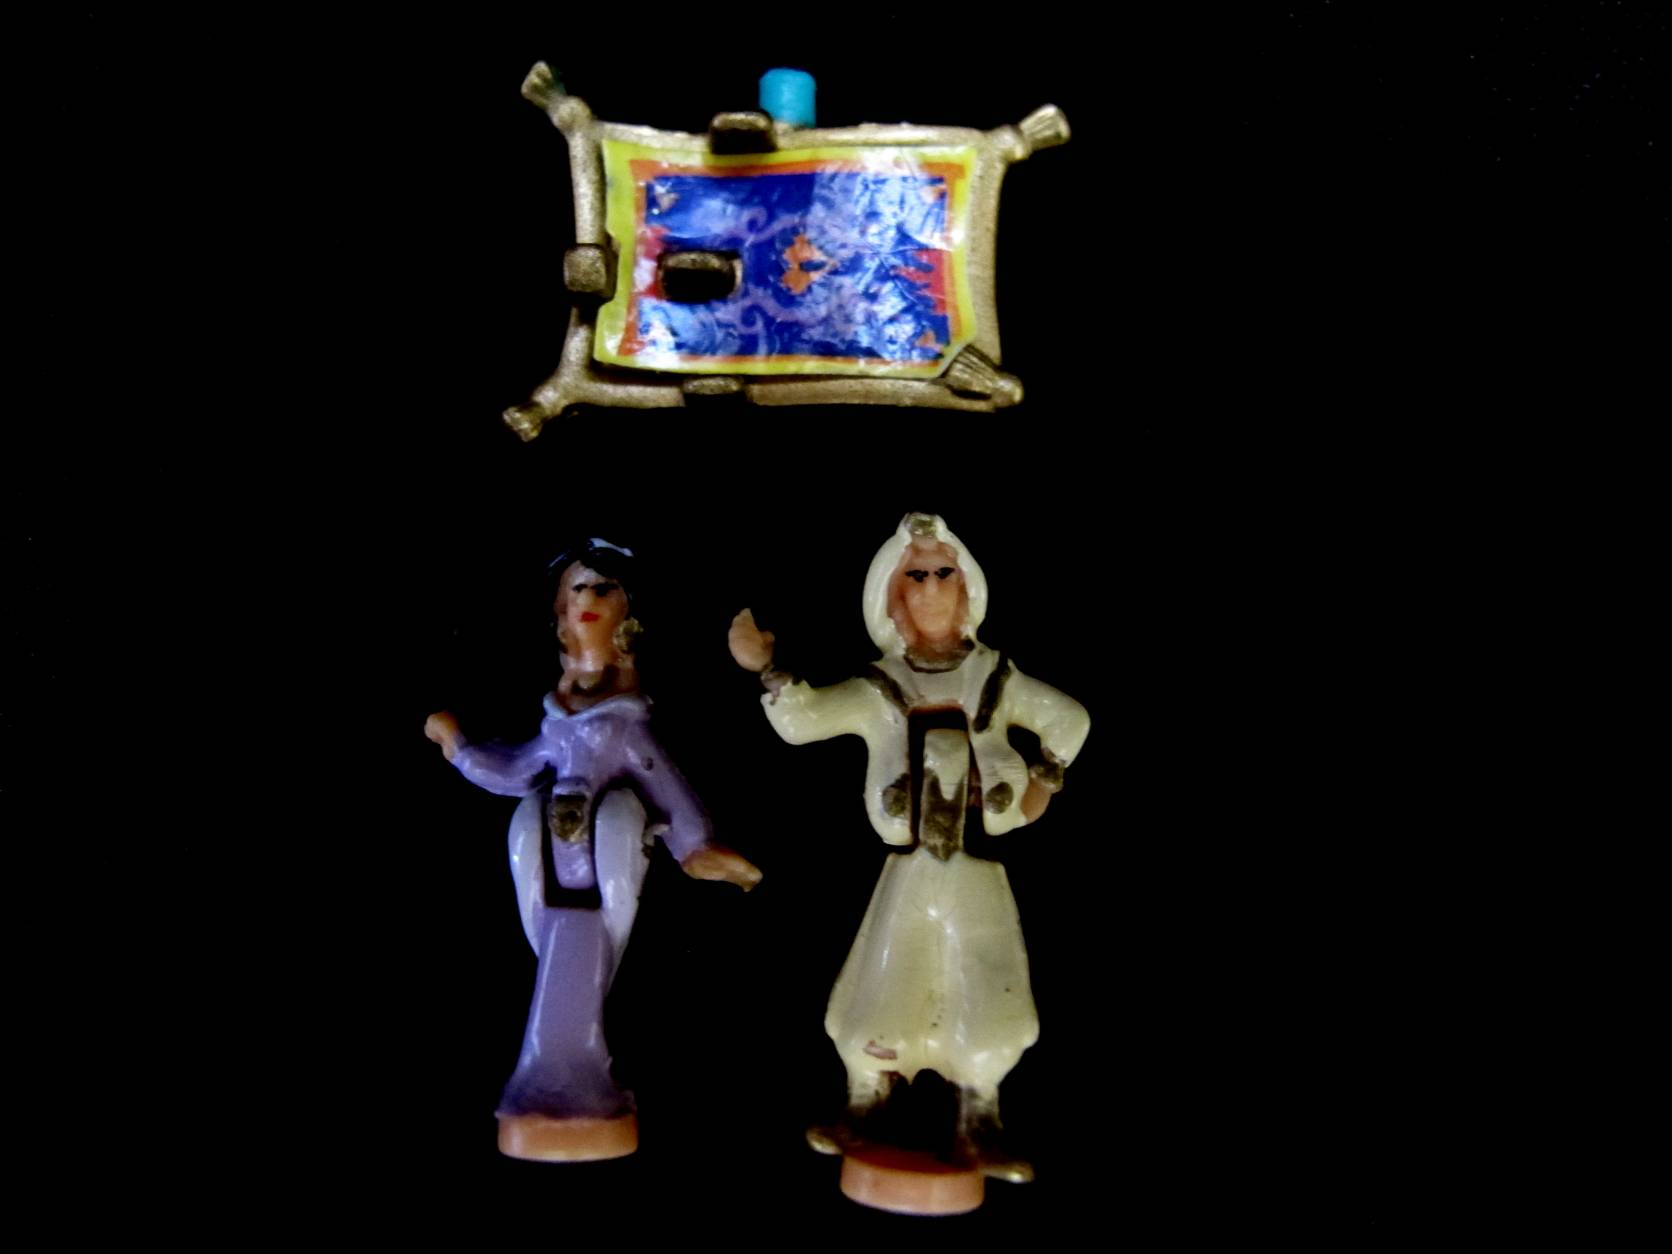 1995 Disney Aladdin playcase (3)